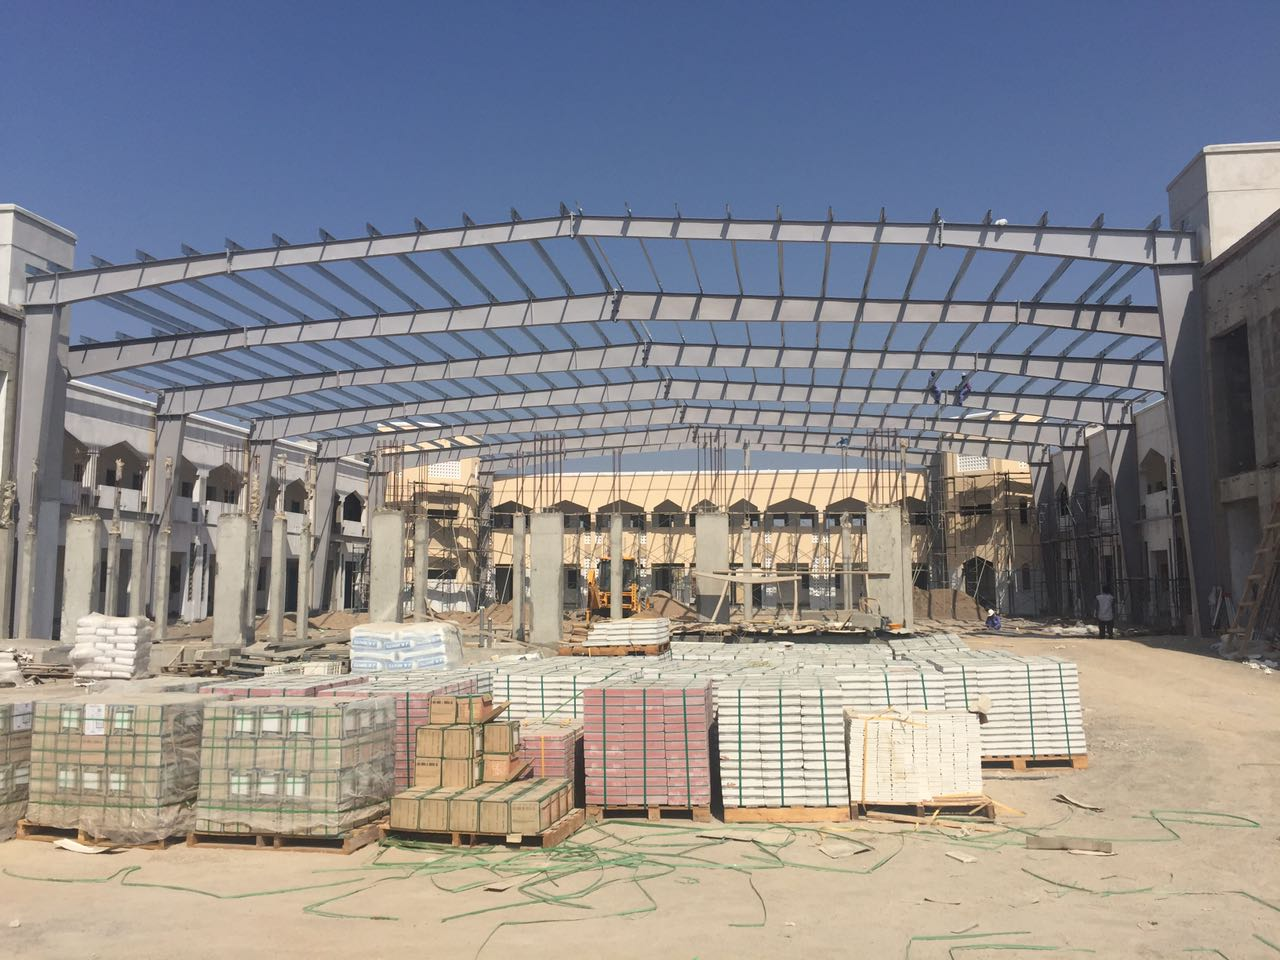 Barka school courtyard for MOE | Excellent Steel Oman